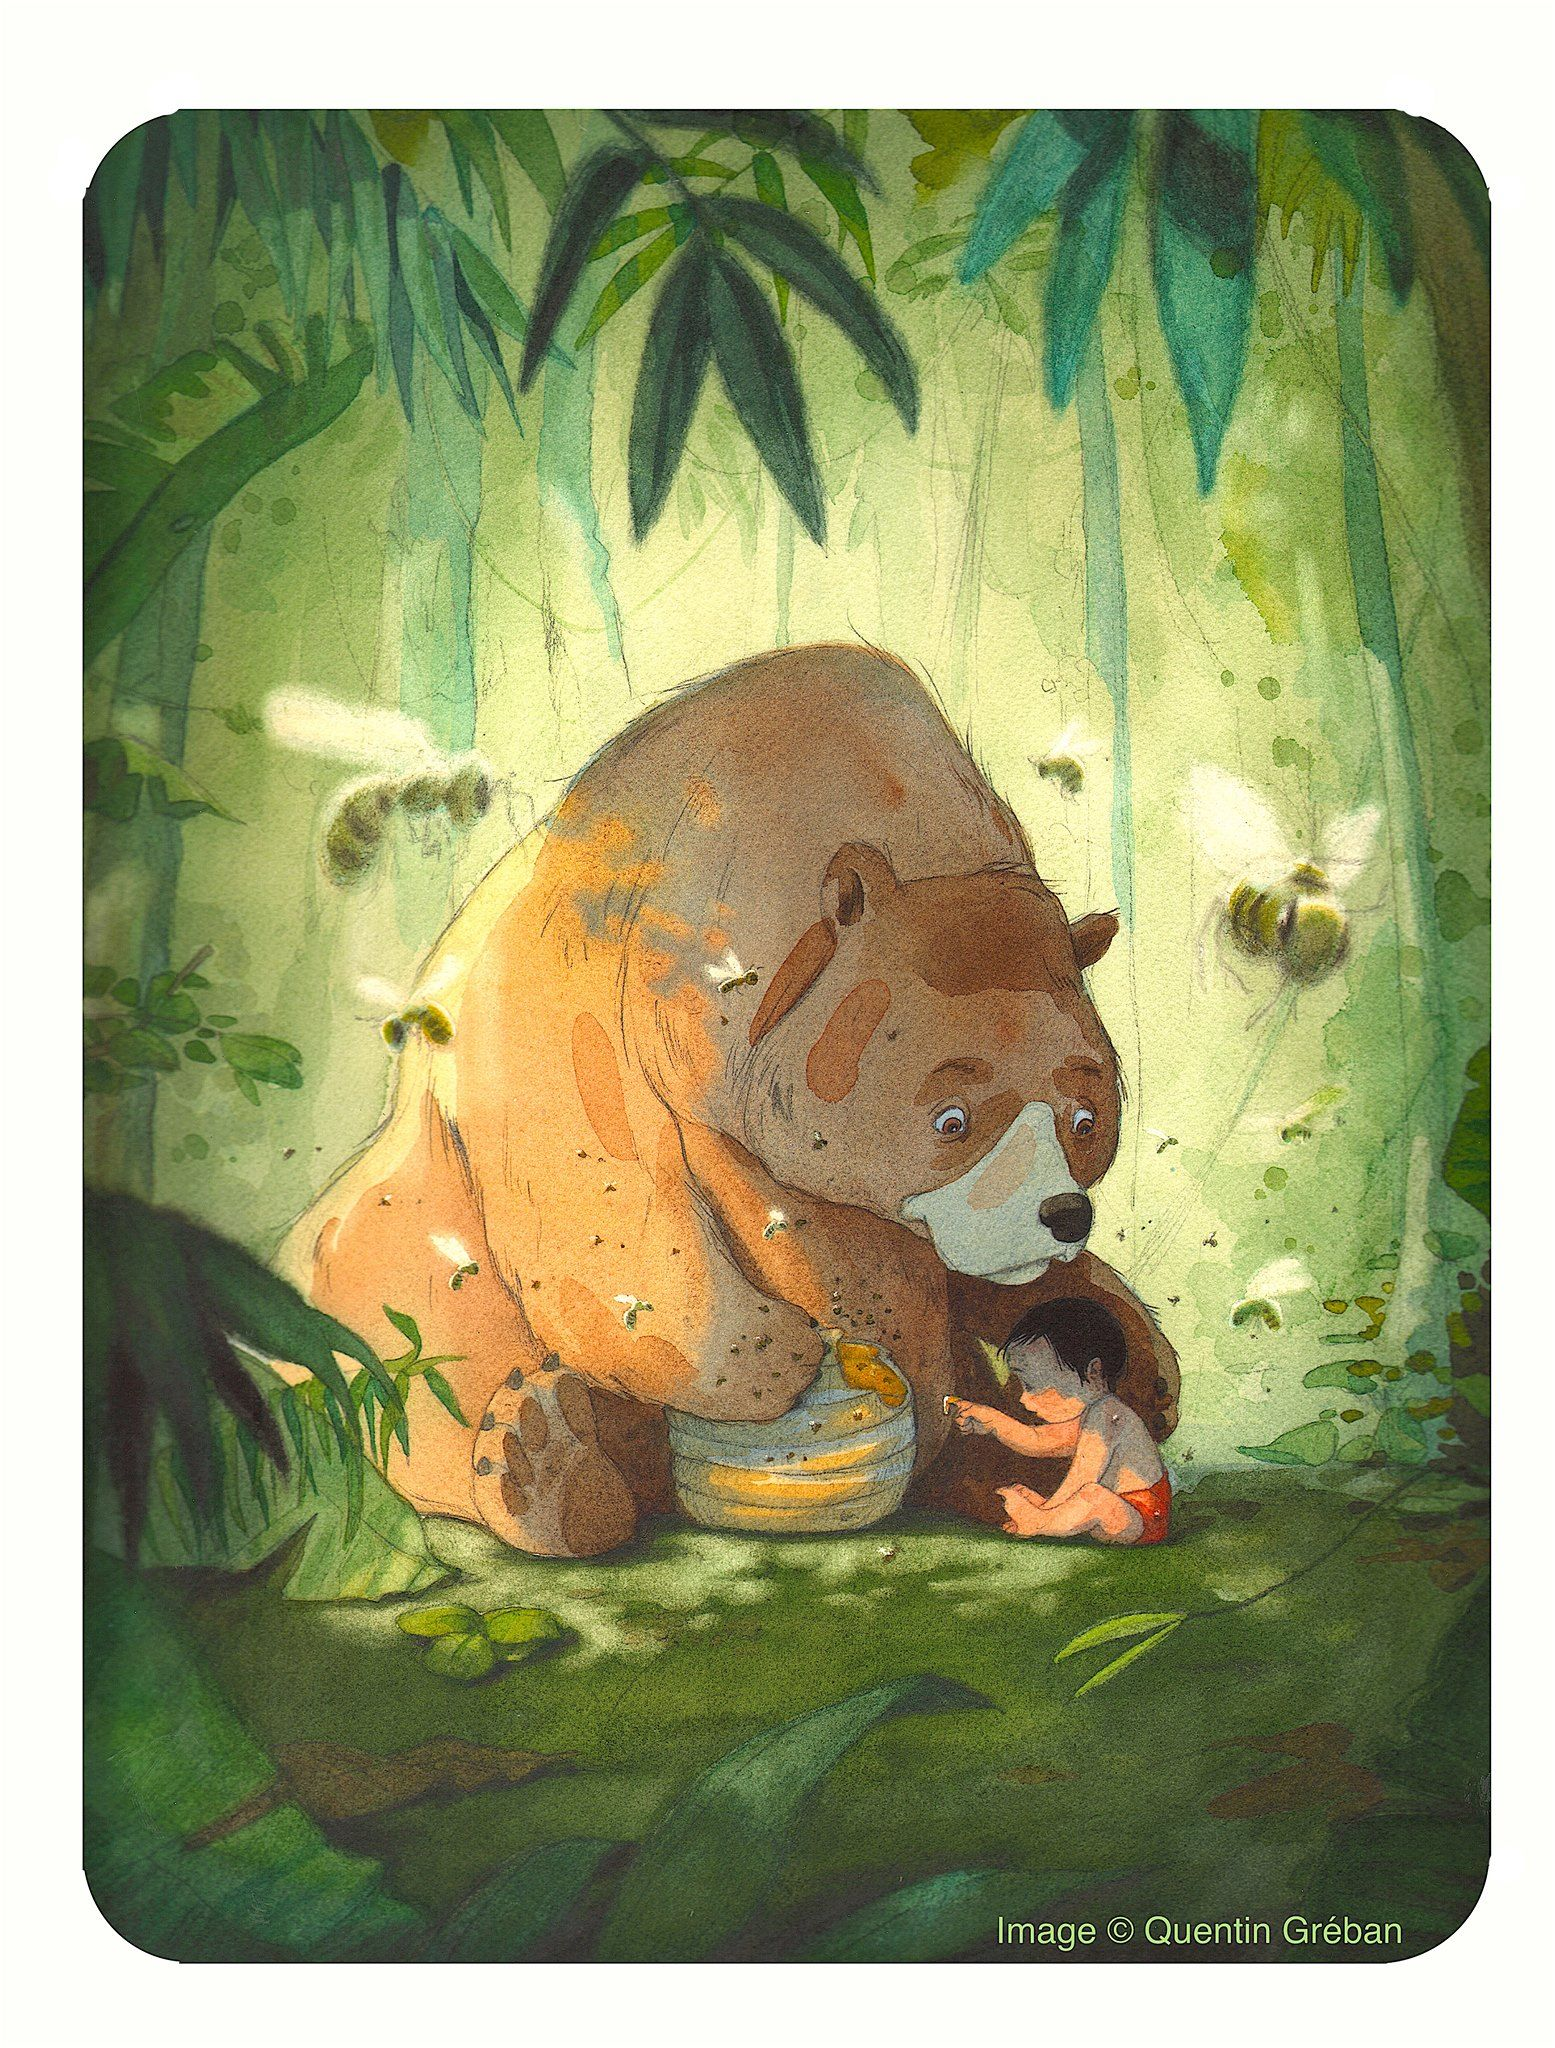 Quentin Greban The Jungle Book Illyustracii Risunki